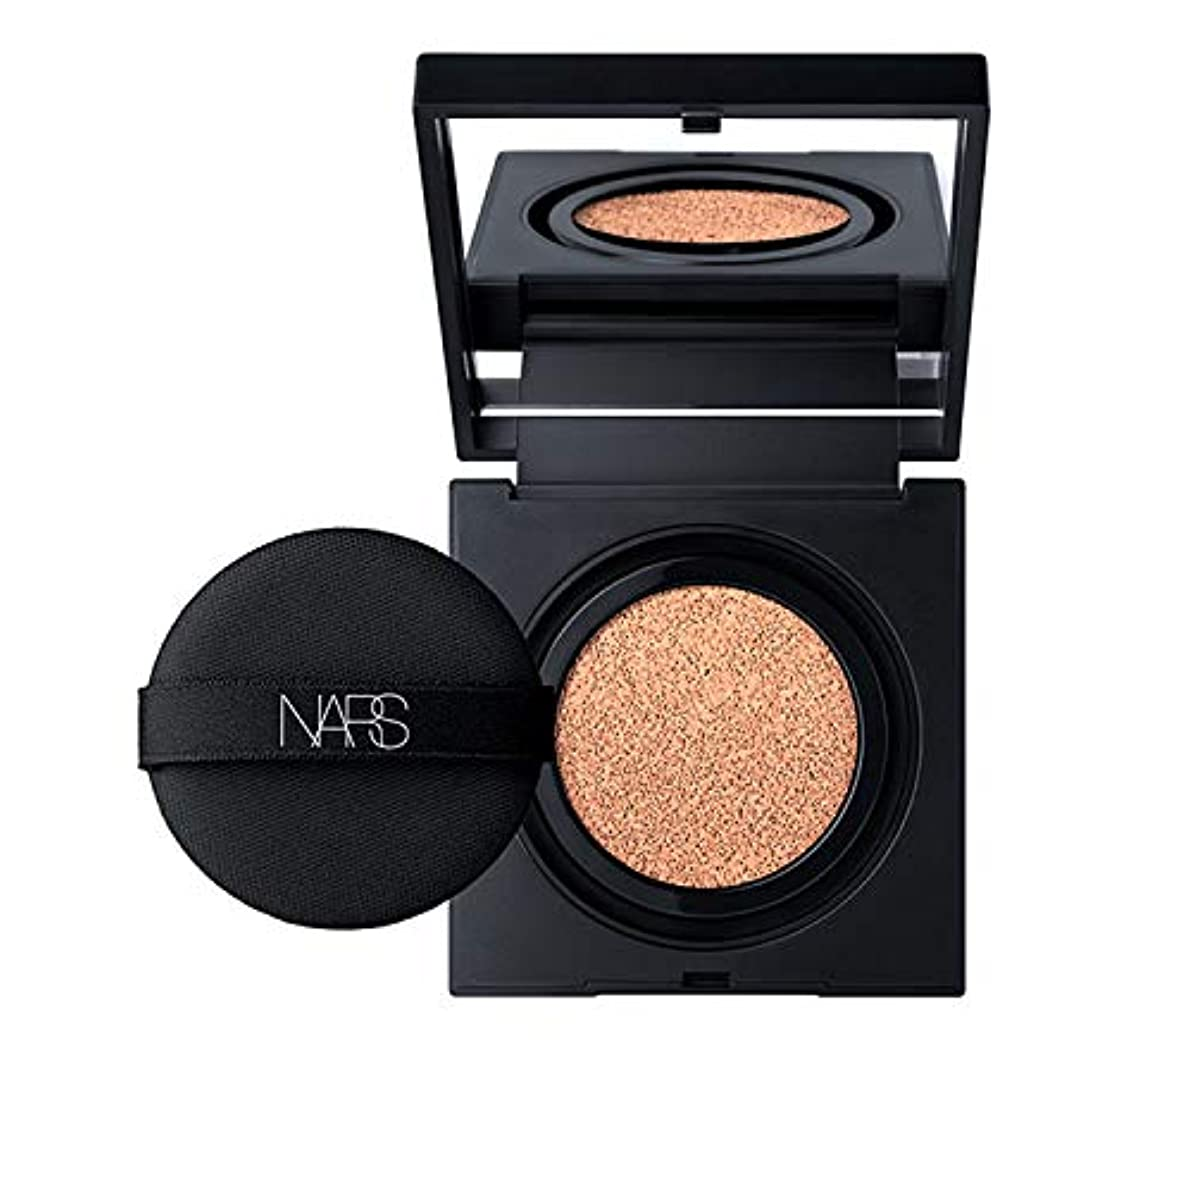 バーター女の子特派員Nars(ナーズ) Natural Radiant Longwear Cushion Foundation 12g # Samcheong